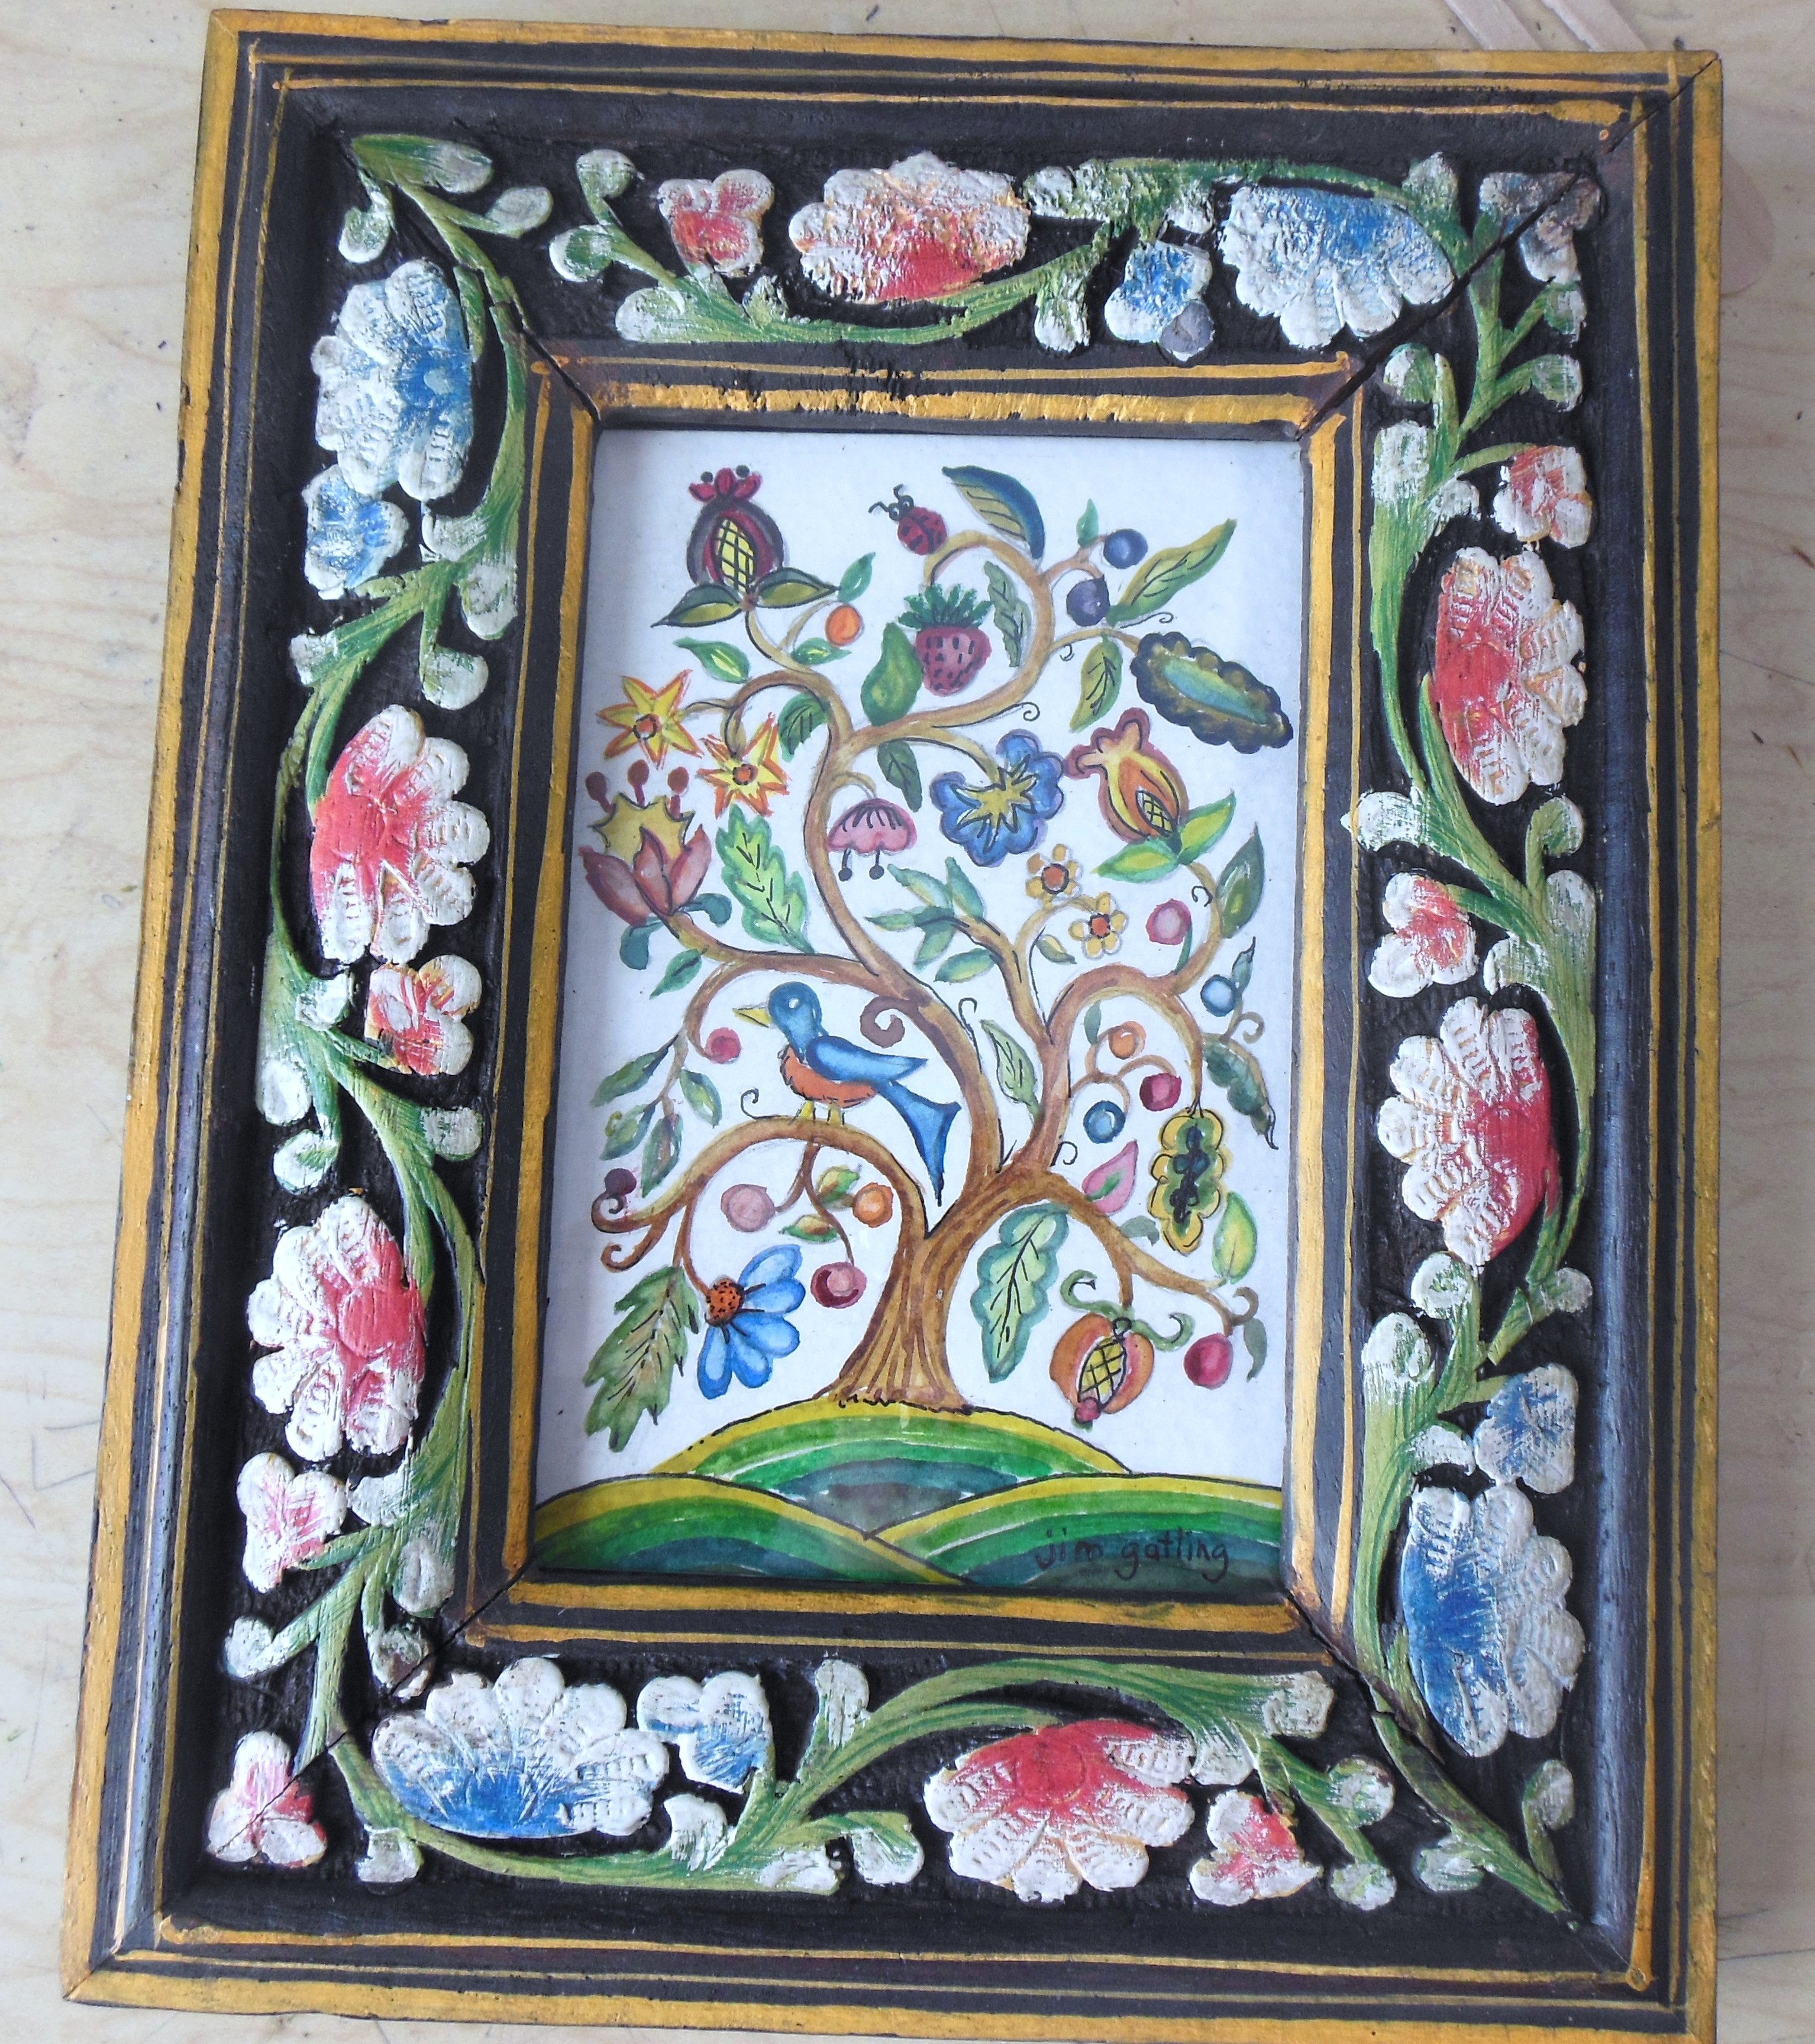 Tree of Life Design in Wooden Carved Hand-Painted Frame | Jim ...